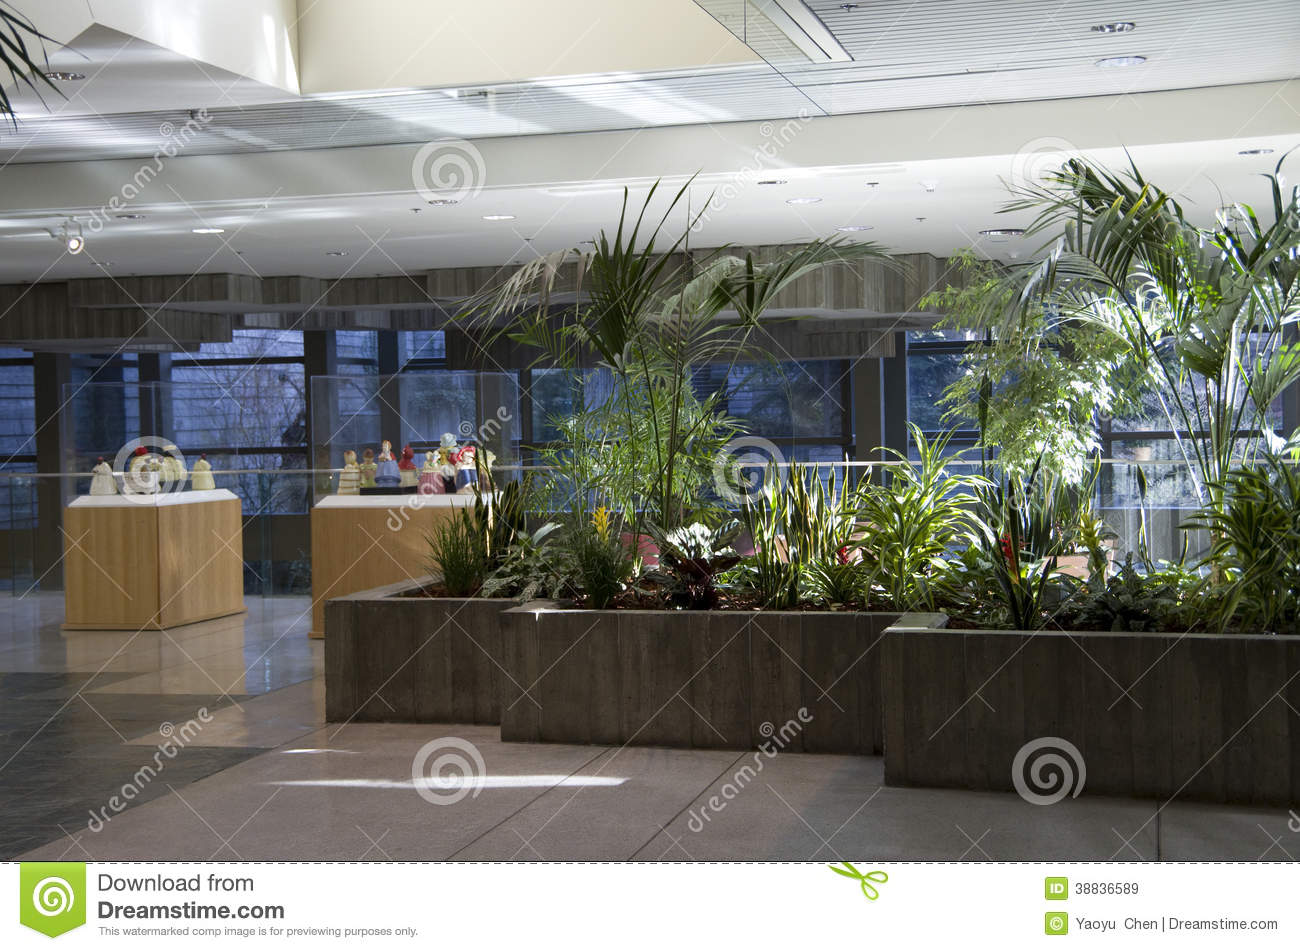 Natural office lighting natural office lighting modern for Office plants no natural light